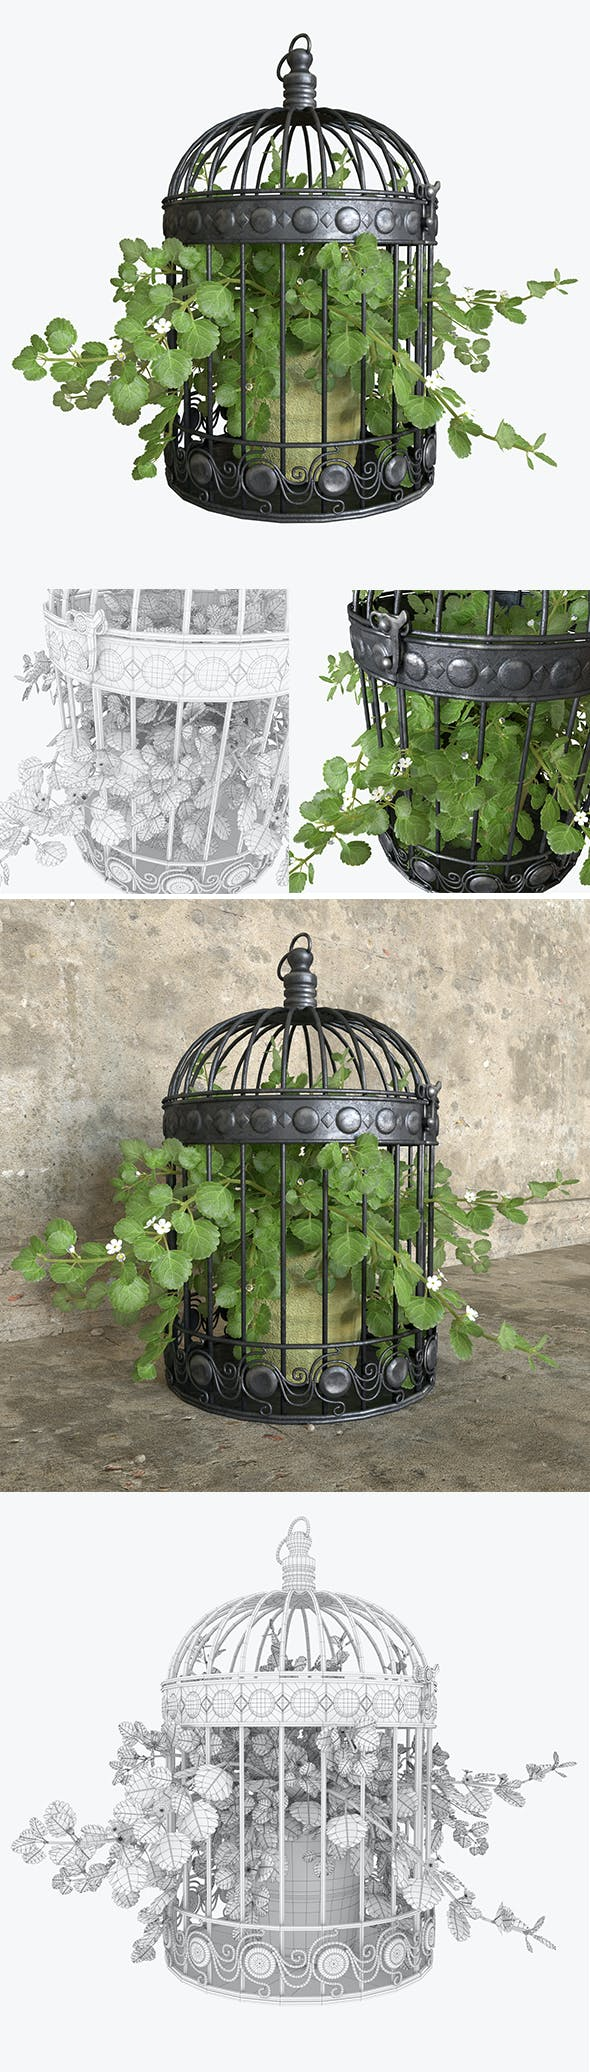 3d model ivy in a bird cage. - 3DOcean Item for Sale